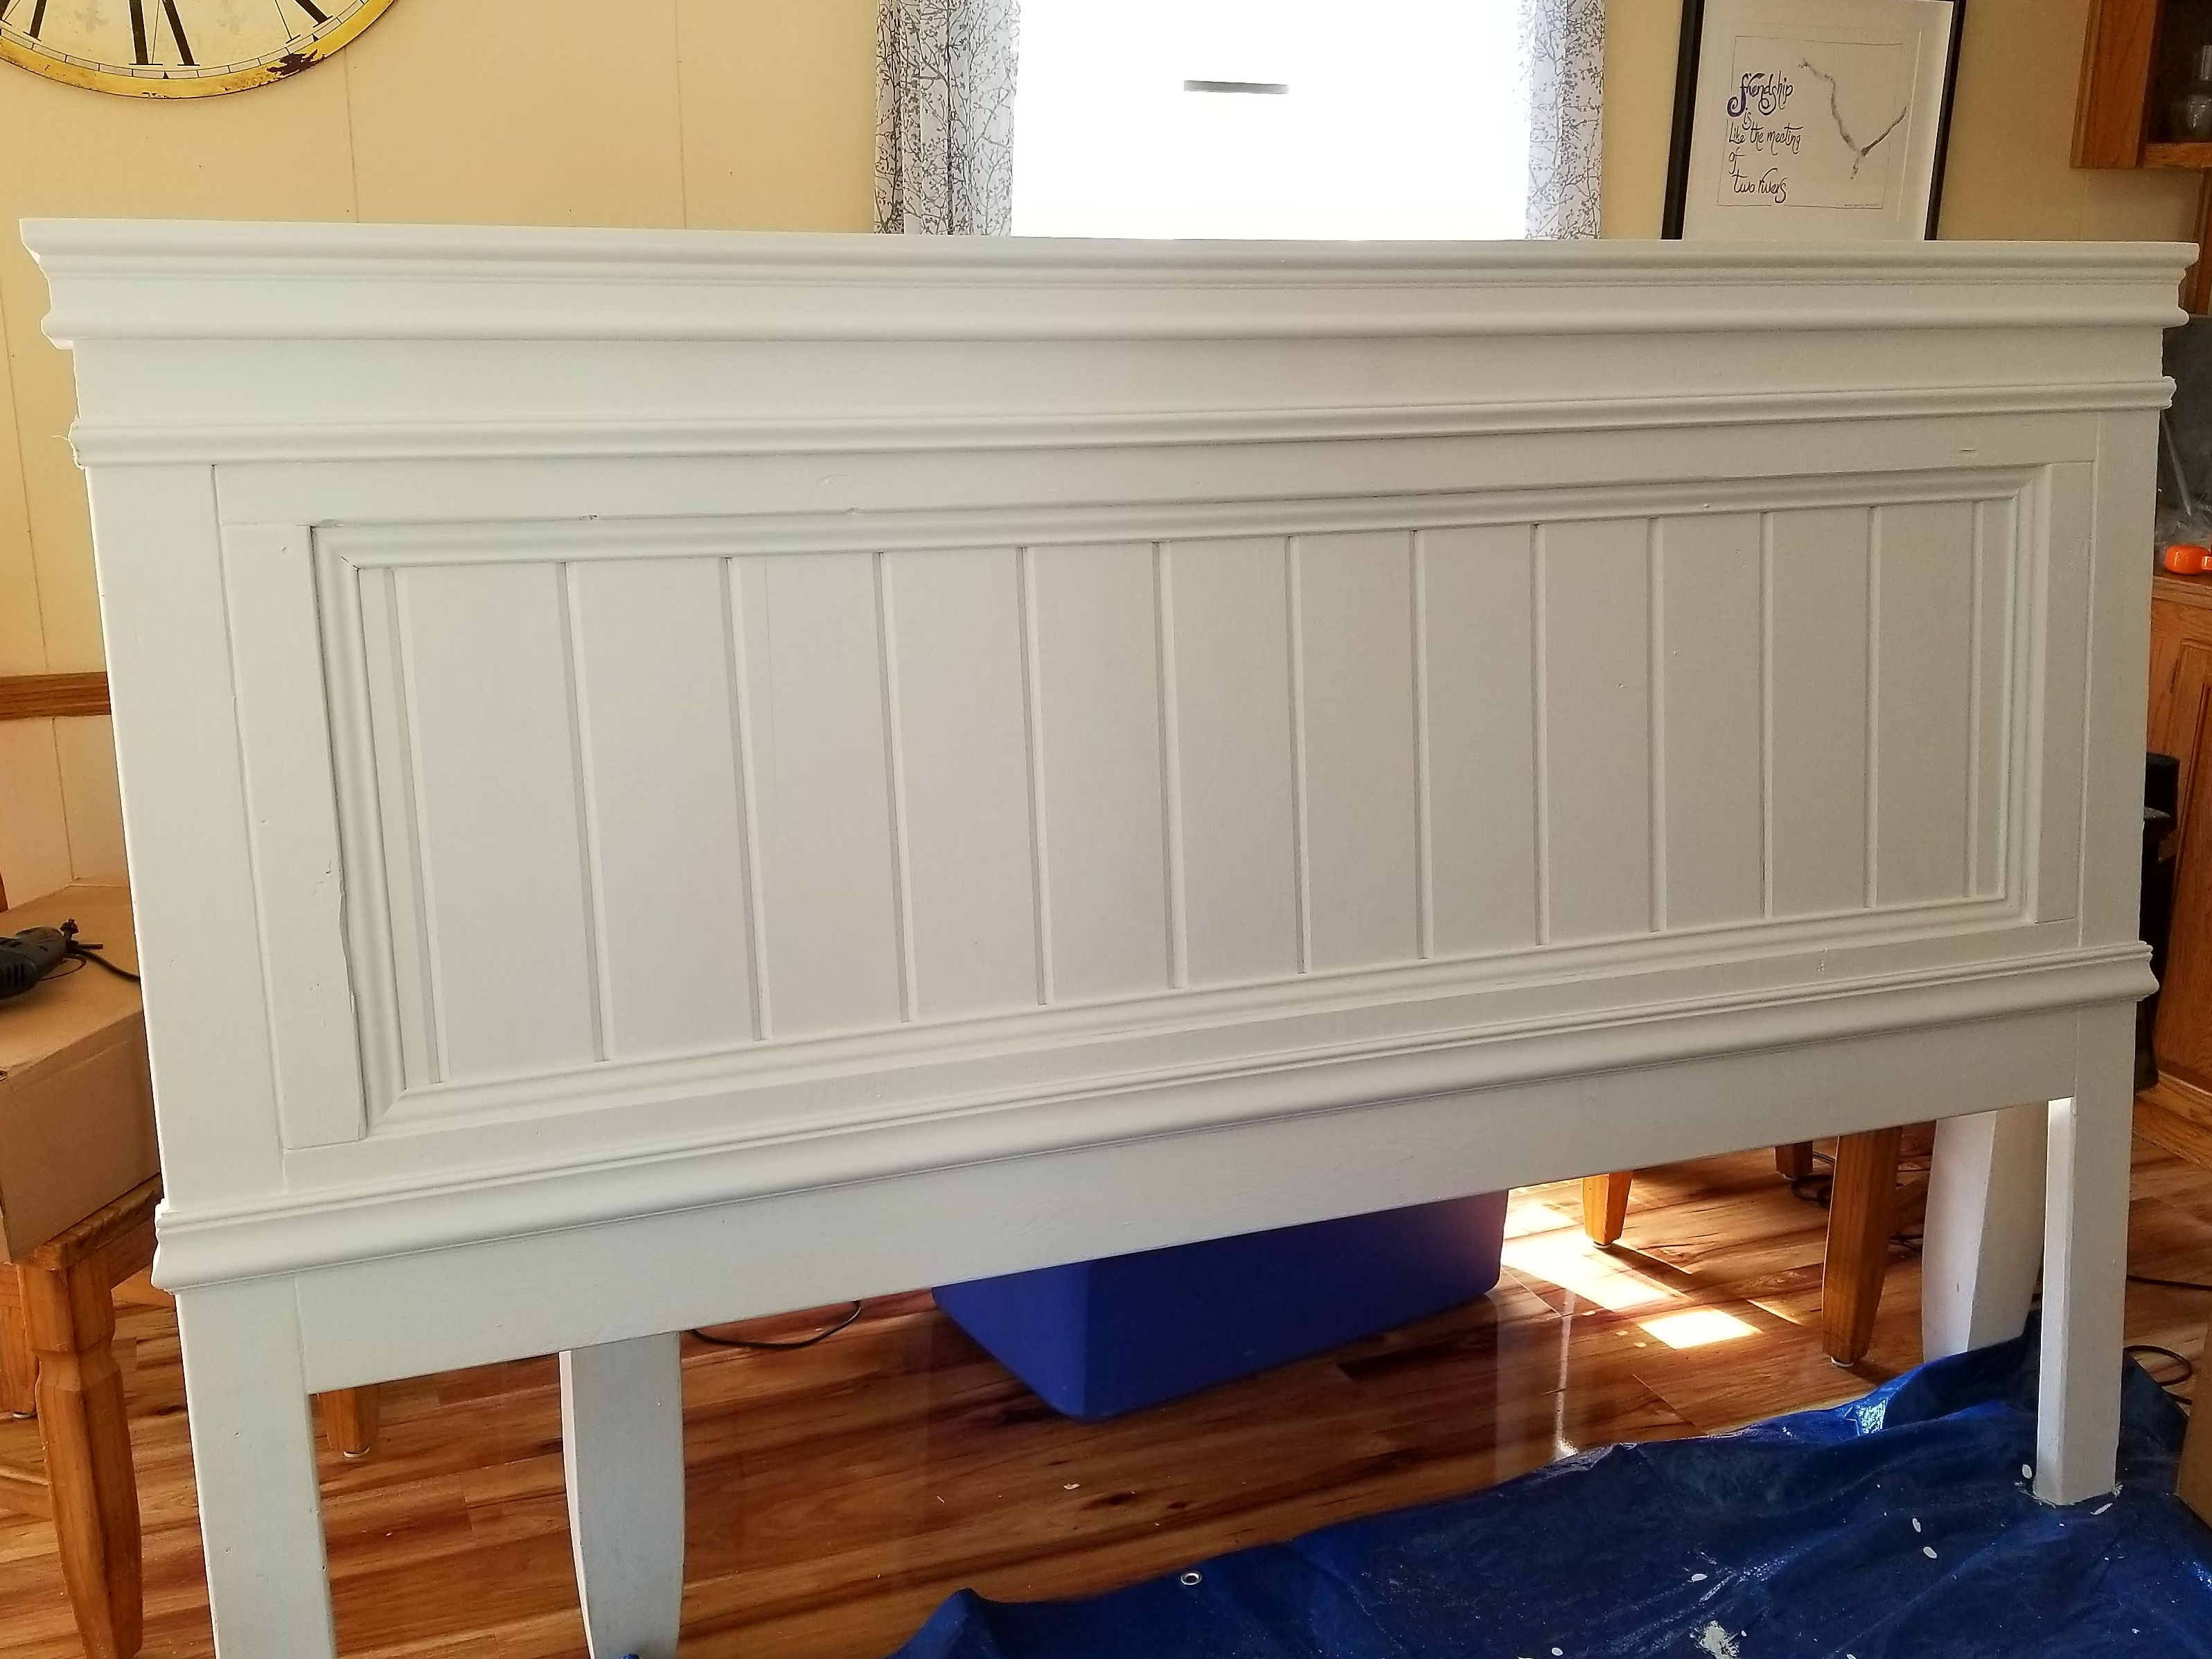 Ana White Fancy Farmhouse Headboard with Modified Trim